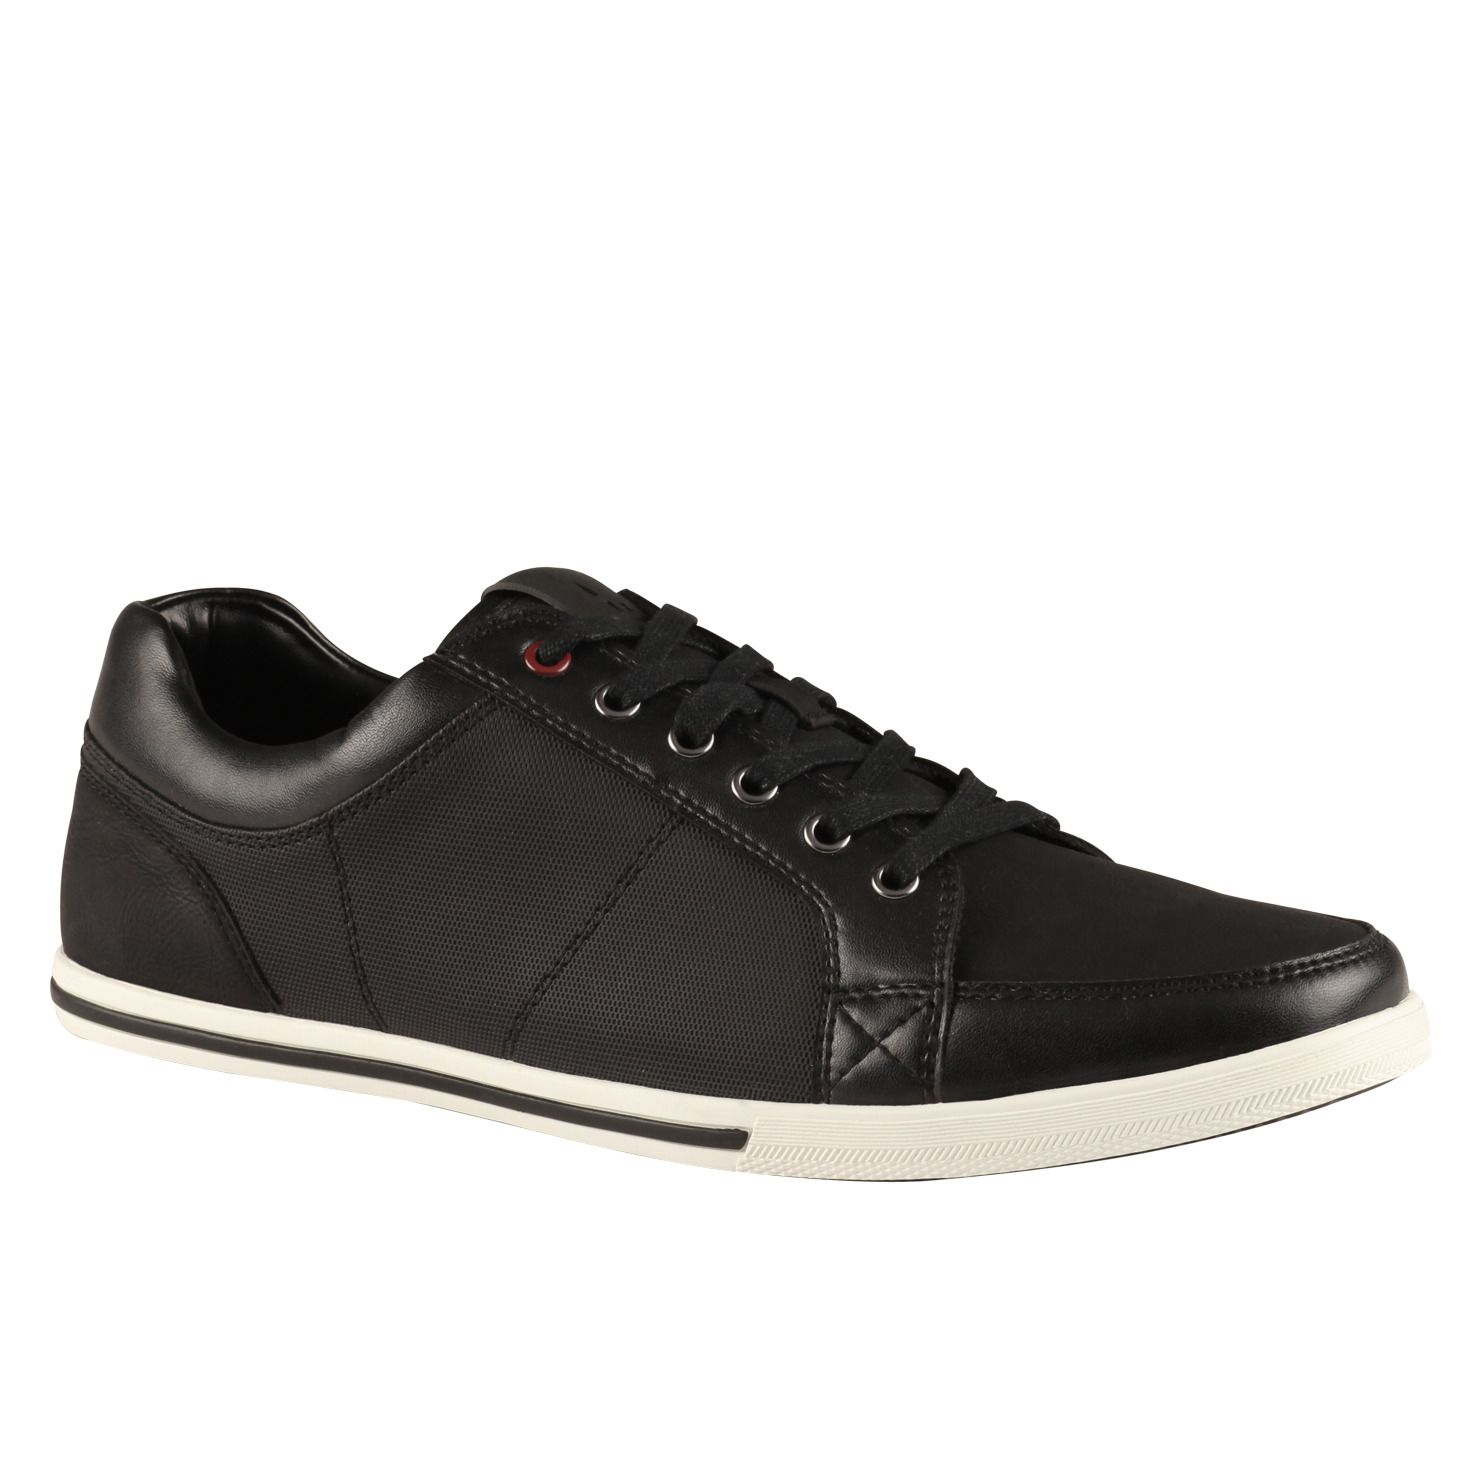 9abeb185e76 JAGGER - mens sneakers shoes for sale at ALDO Shoes. | Casual with ...